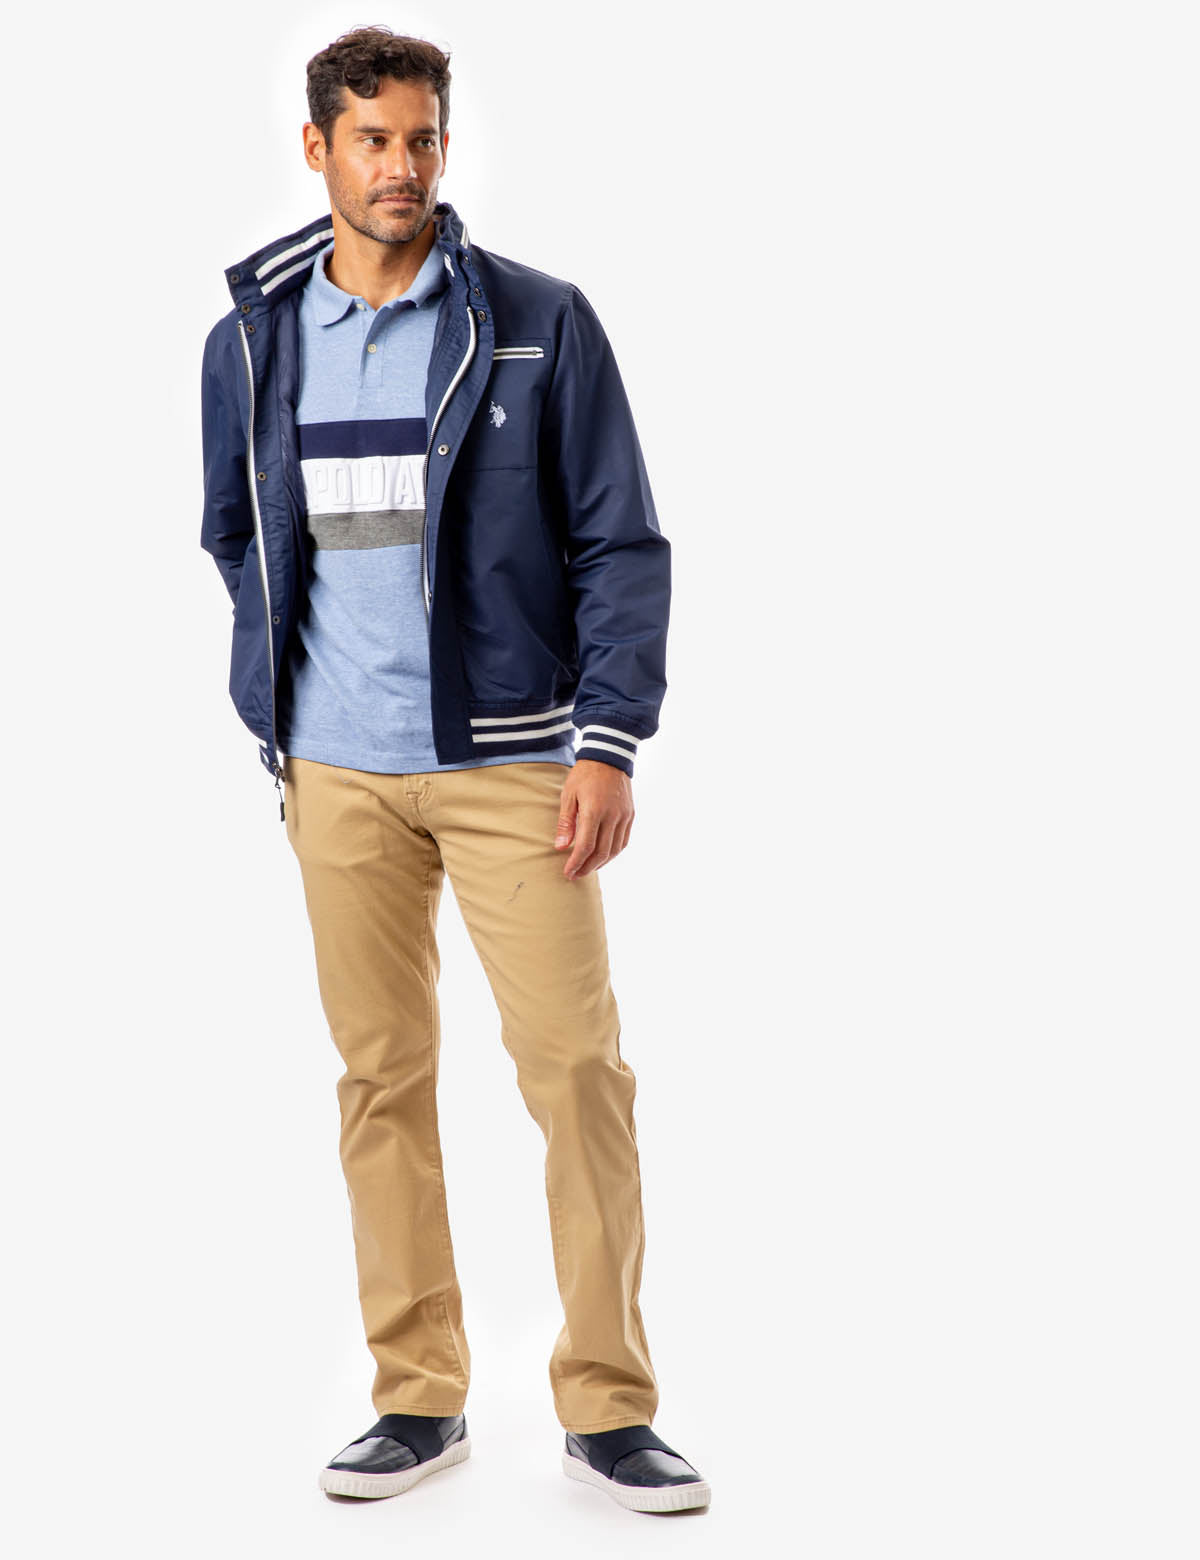 YACHT JACKET WITH PATCH POCKET - U.S. Polo Assn.